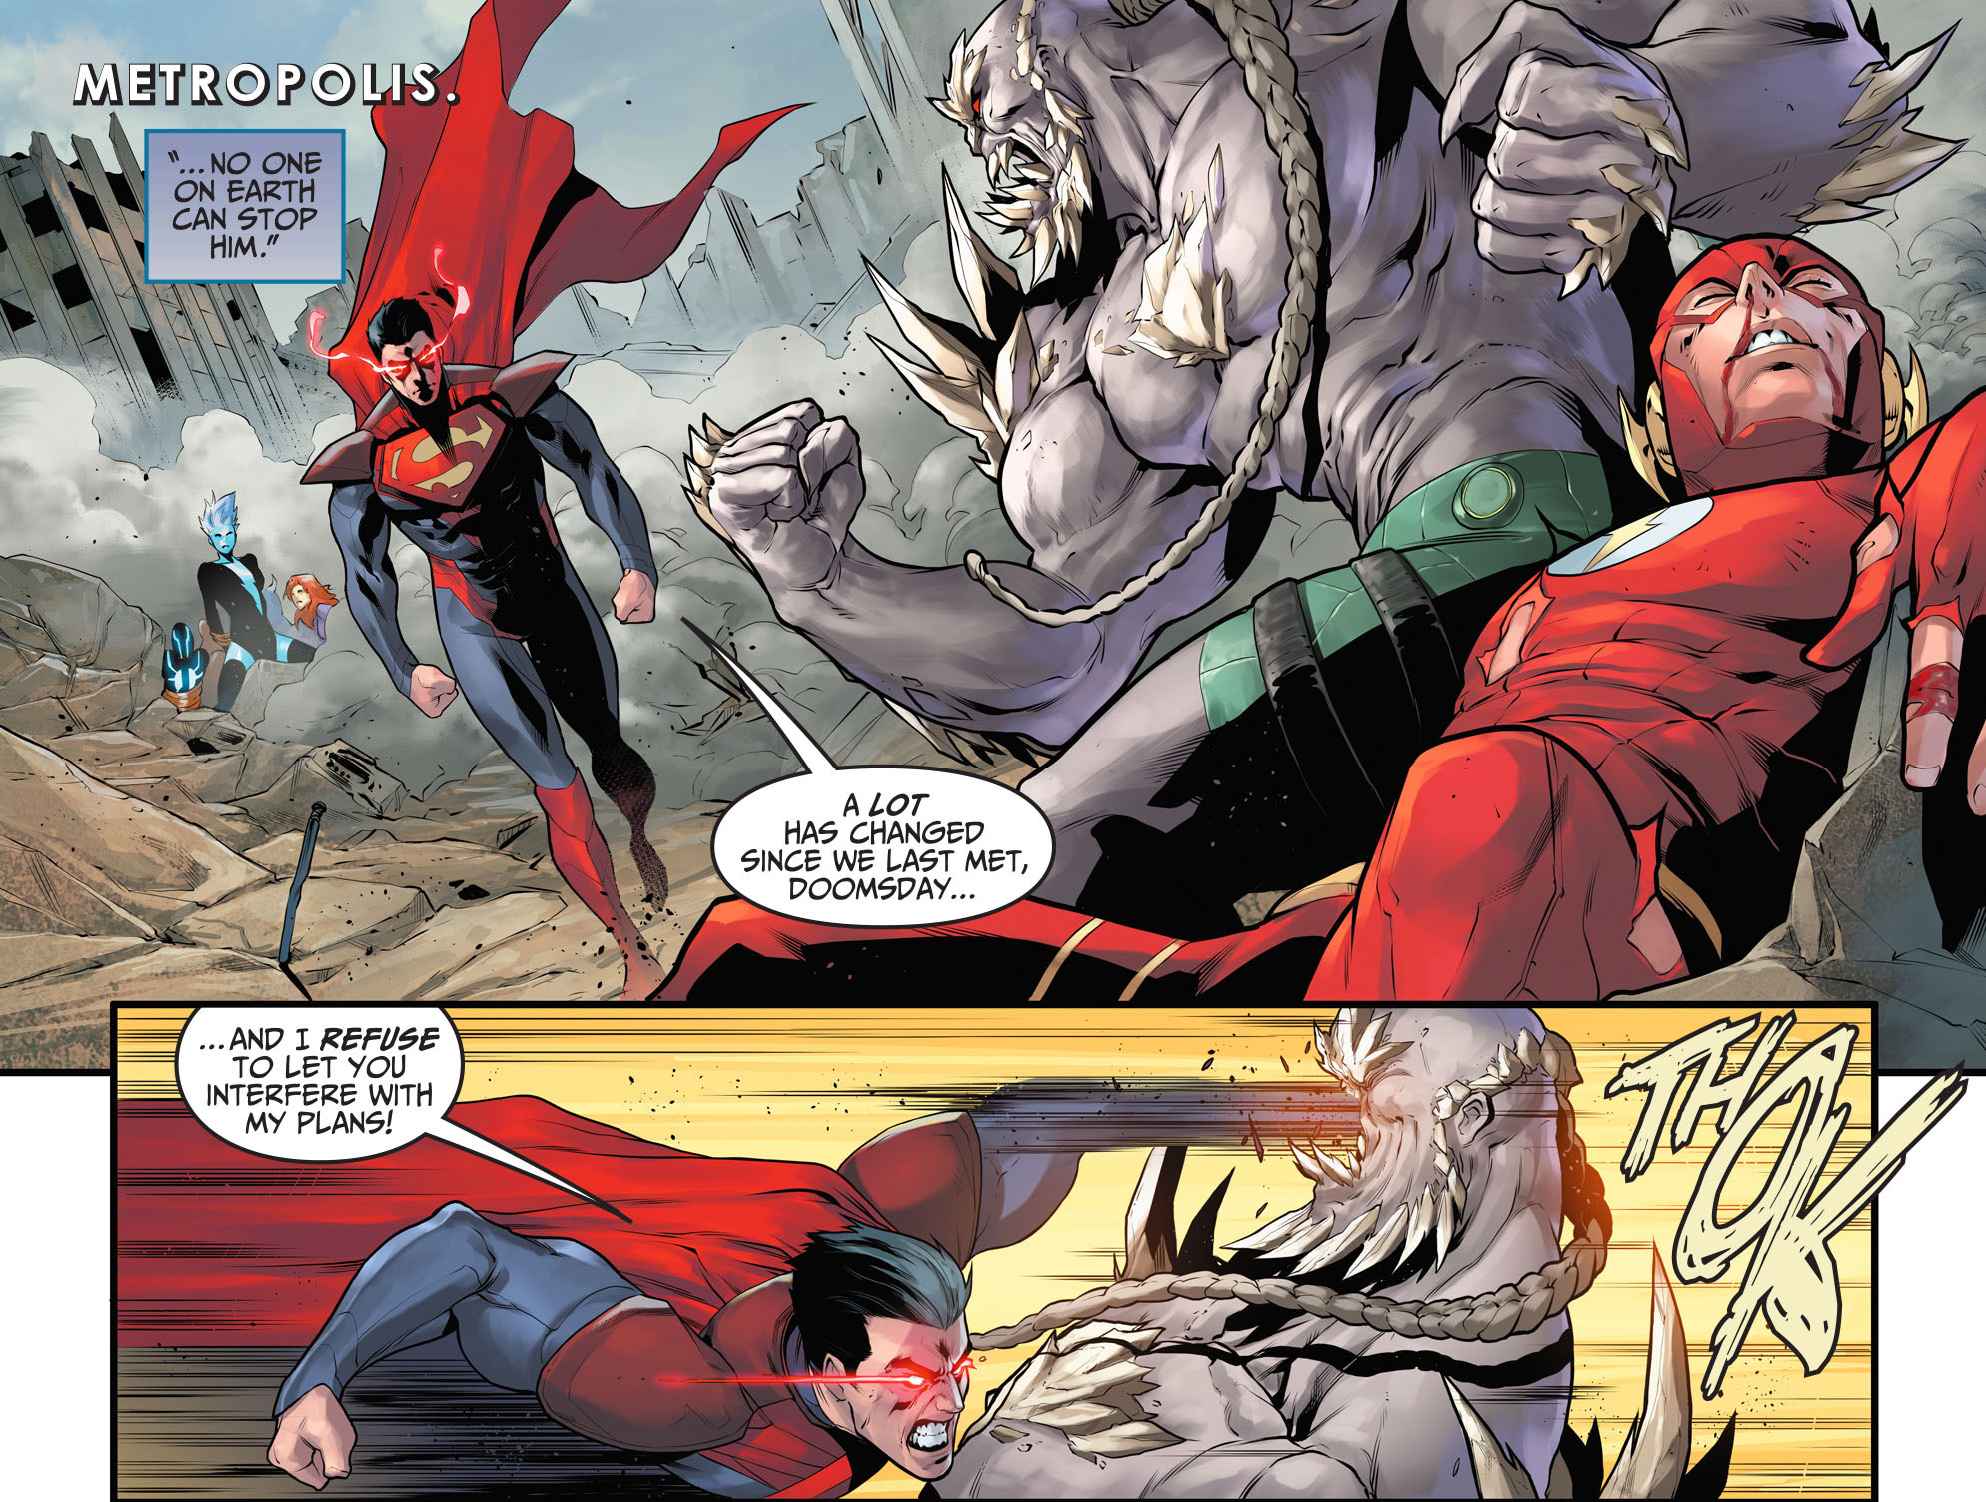 superman vs doomsday (injustice gods among us)